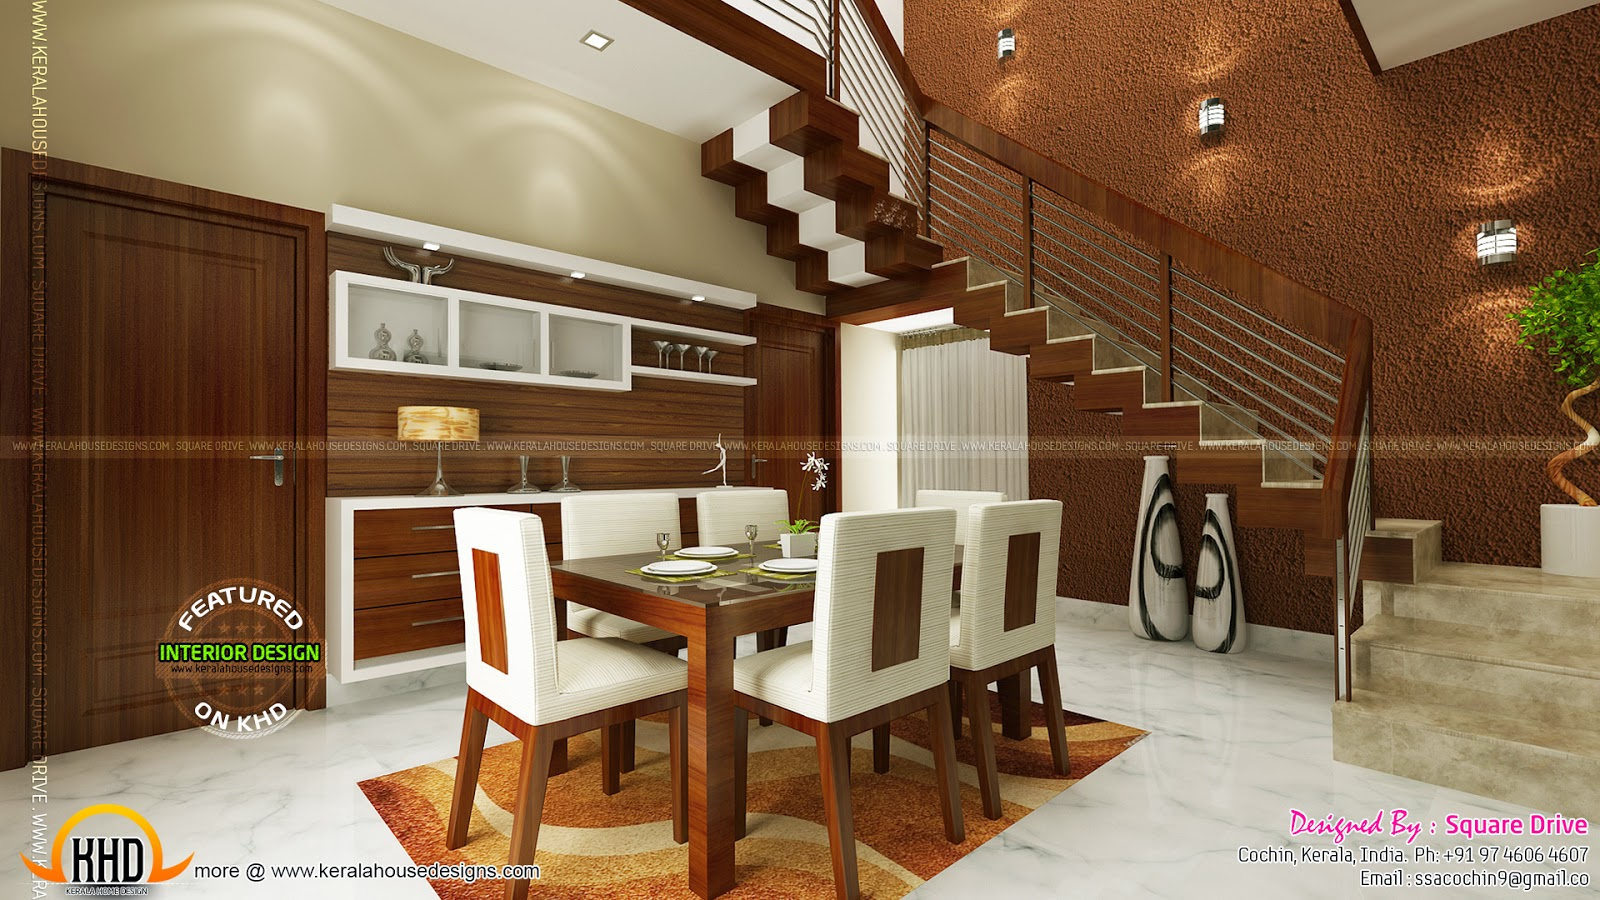 Cochin interior design kerala home design and floor plans for House and home interior design